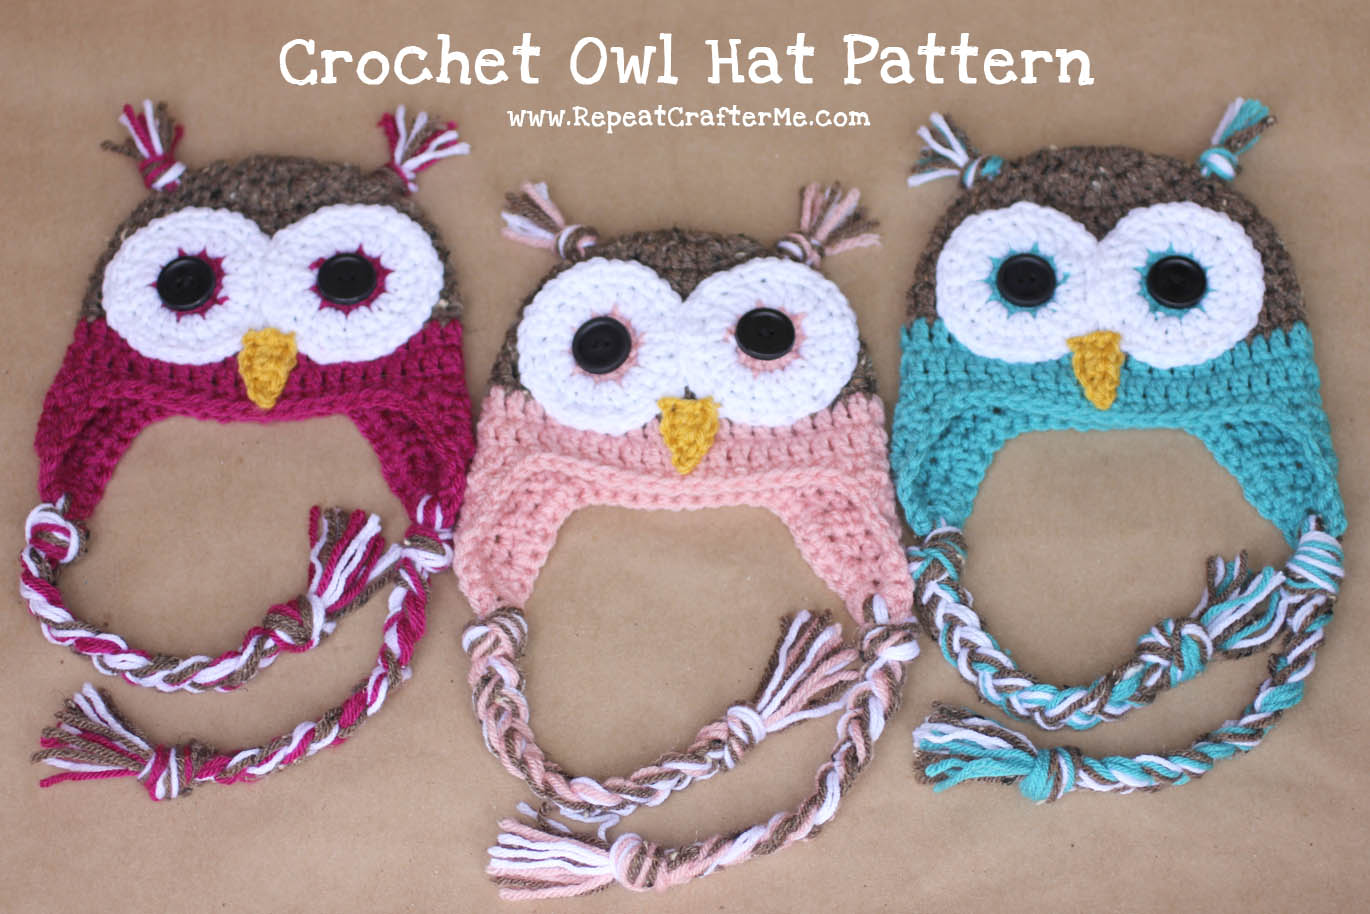 Repeat Crafter Crochet Owl Hat Pattern